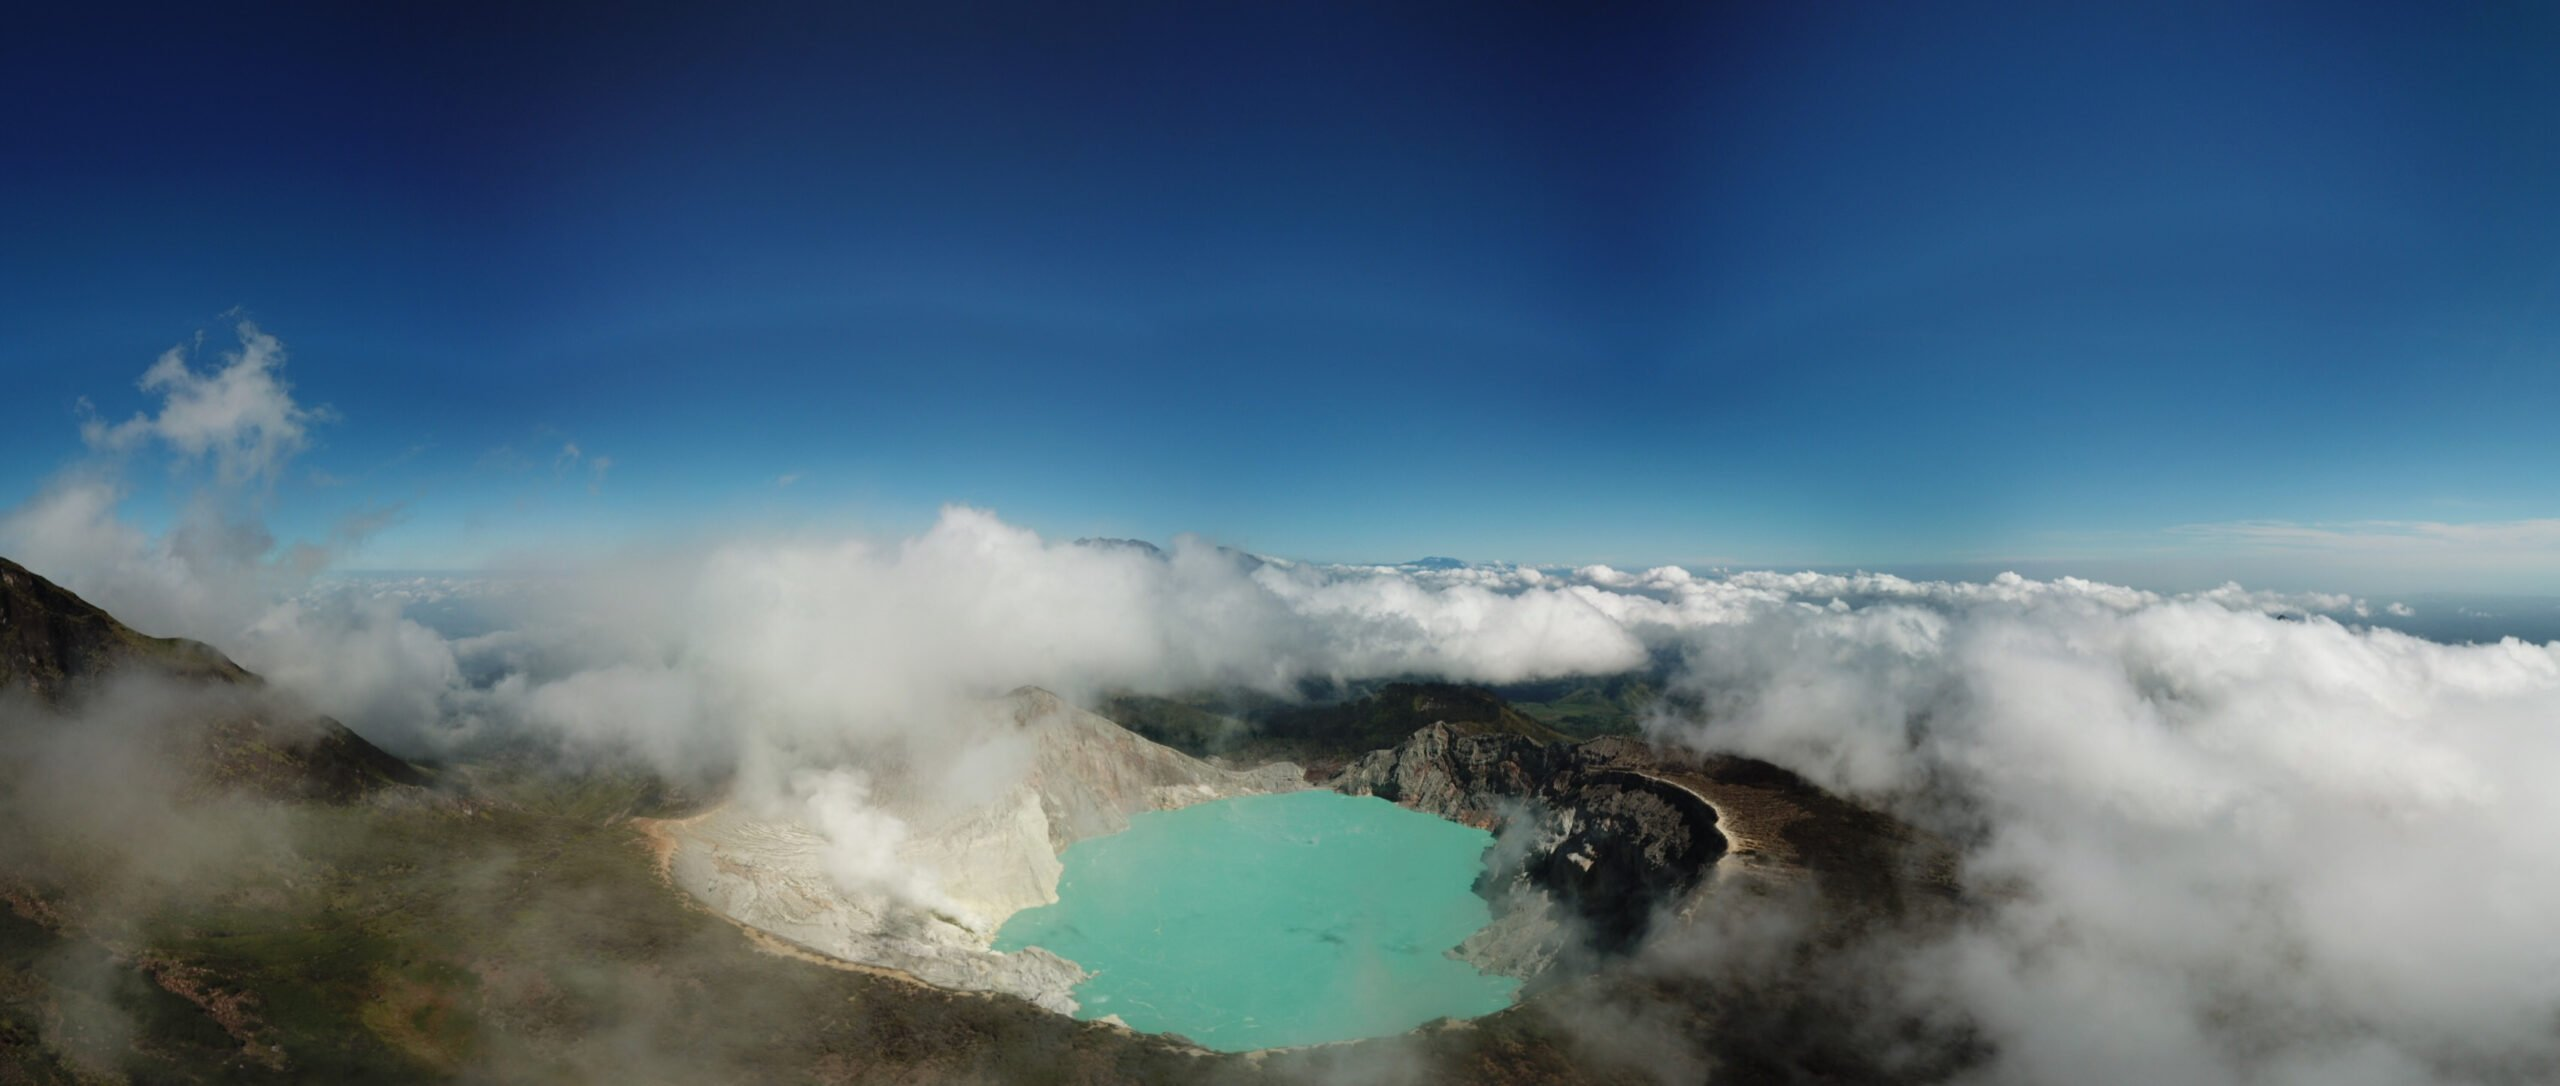 Discover East Java In Our Mount Bromo Sunrise & Ijen Blue Fire 2 Day V.i.p Tour